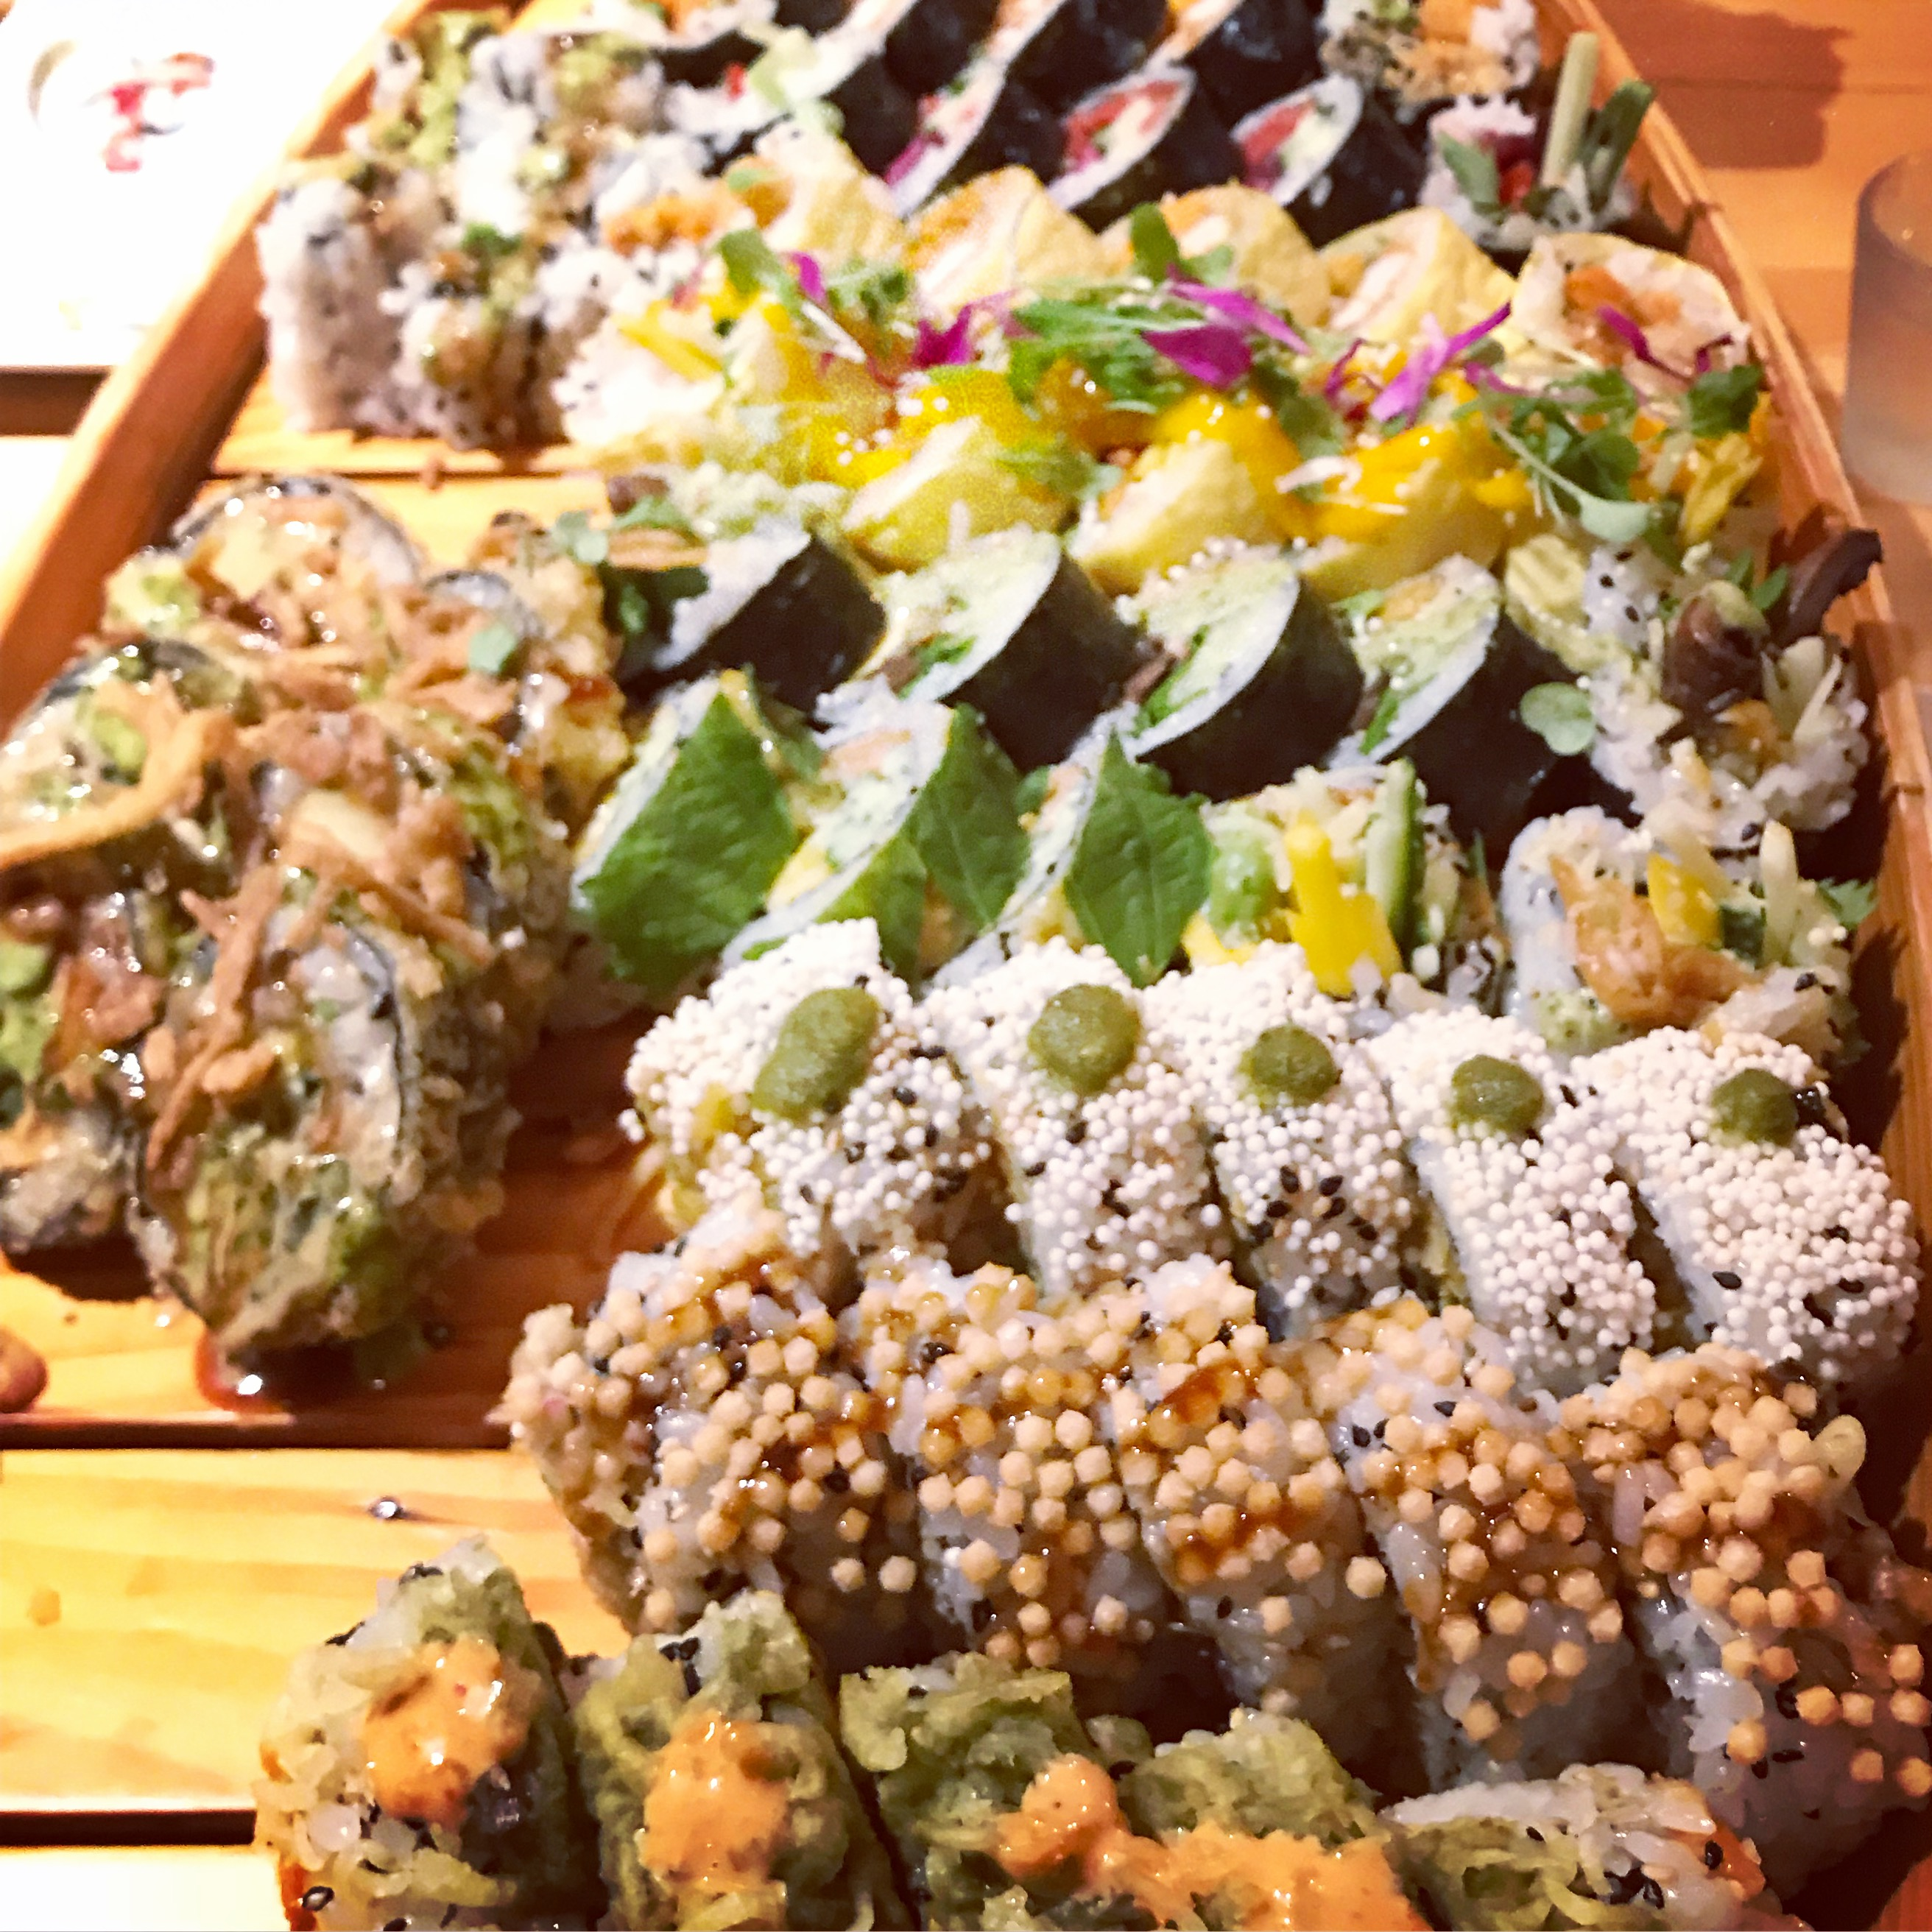 Vegan Sushi at Sushi Momo, Ms. Adventures in Italy, by Sara Rosso